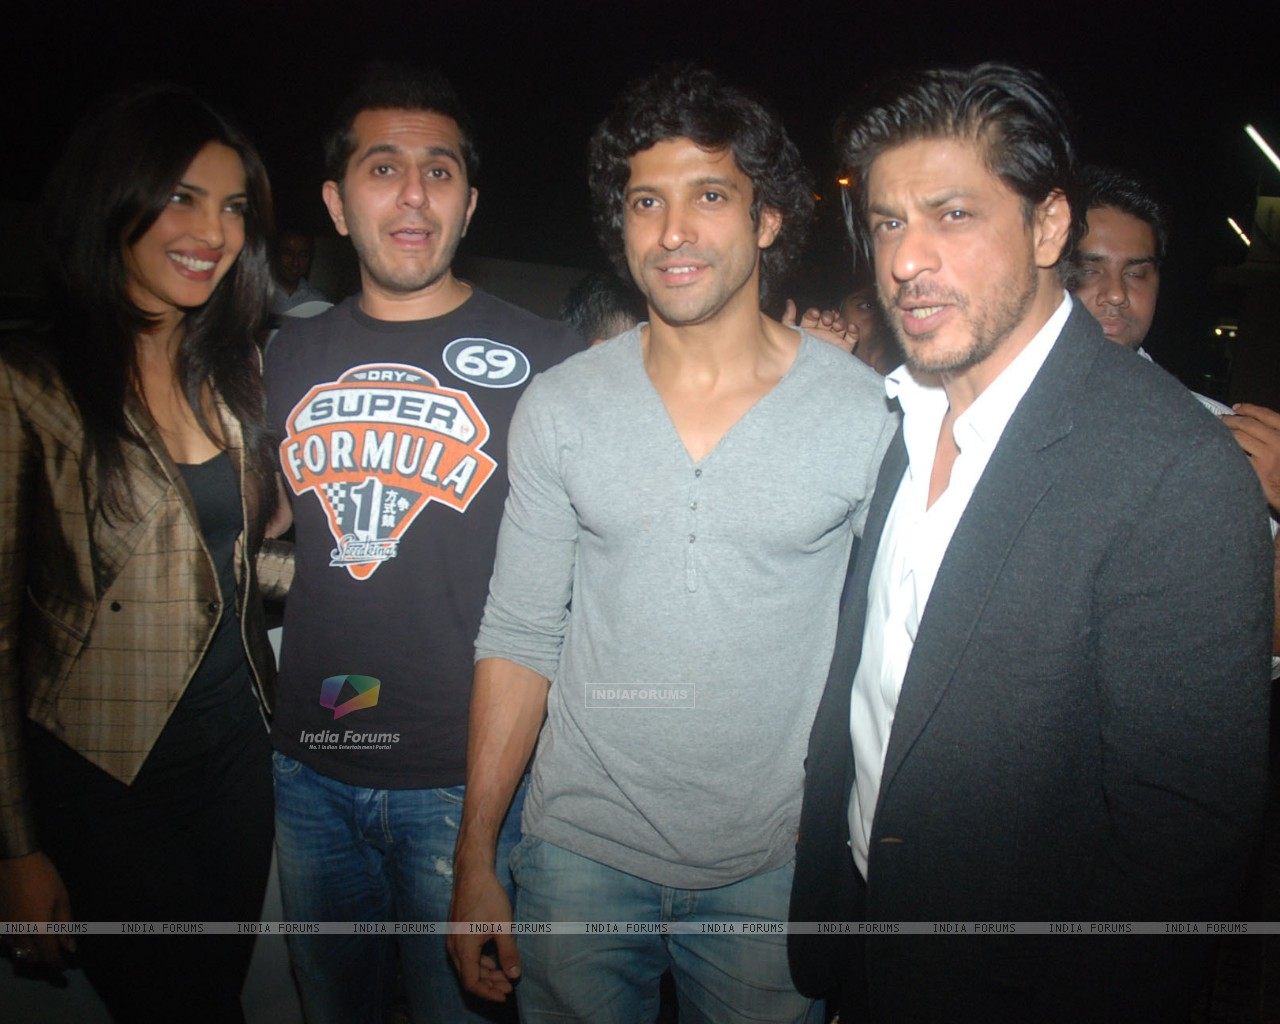 Priyanka Chopra, Ritesh Sidhwani, Farhan Akhtar, Shah Rukh Khan at Don 2 special screening at PVR (175839) size:1280x1024